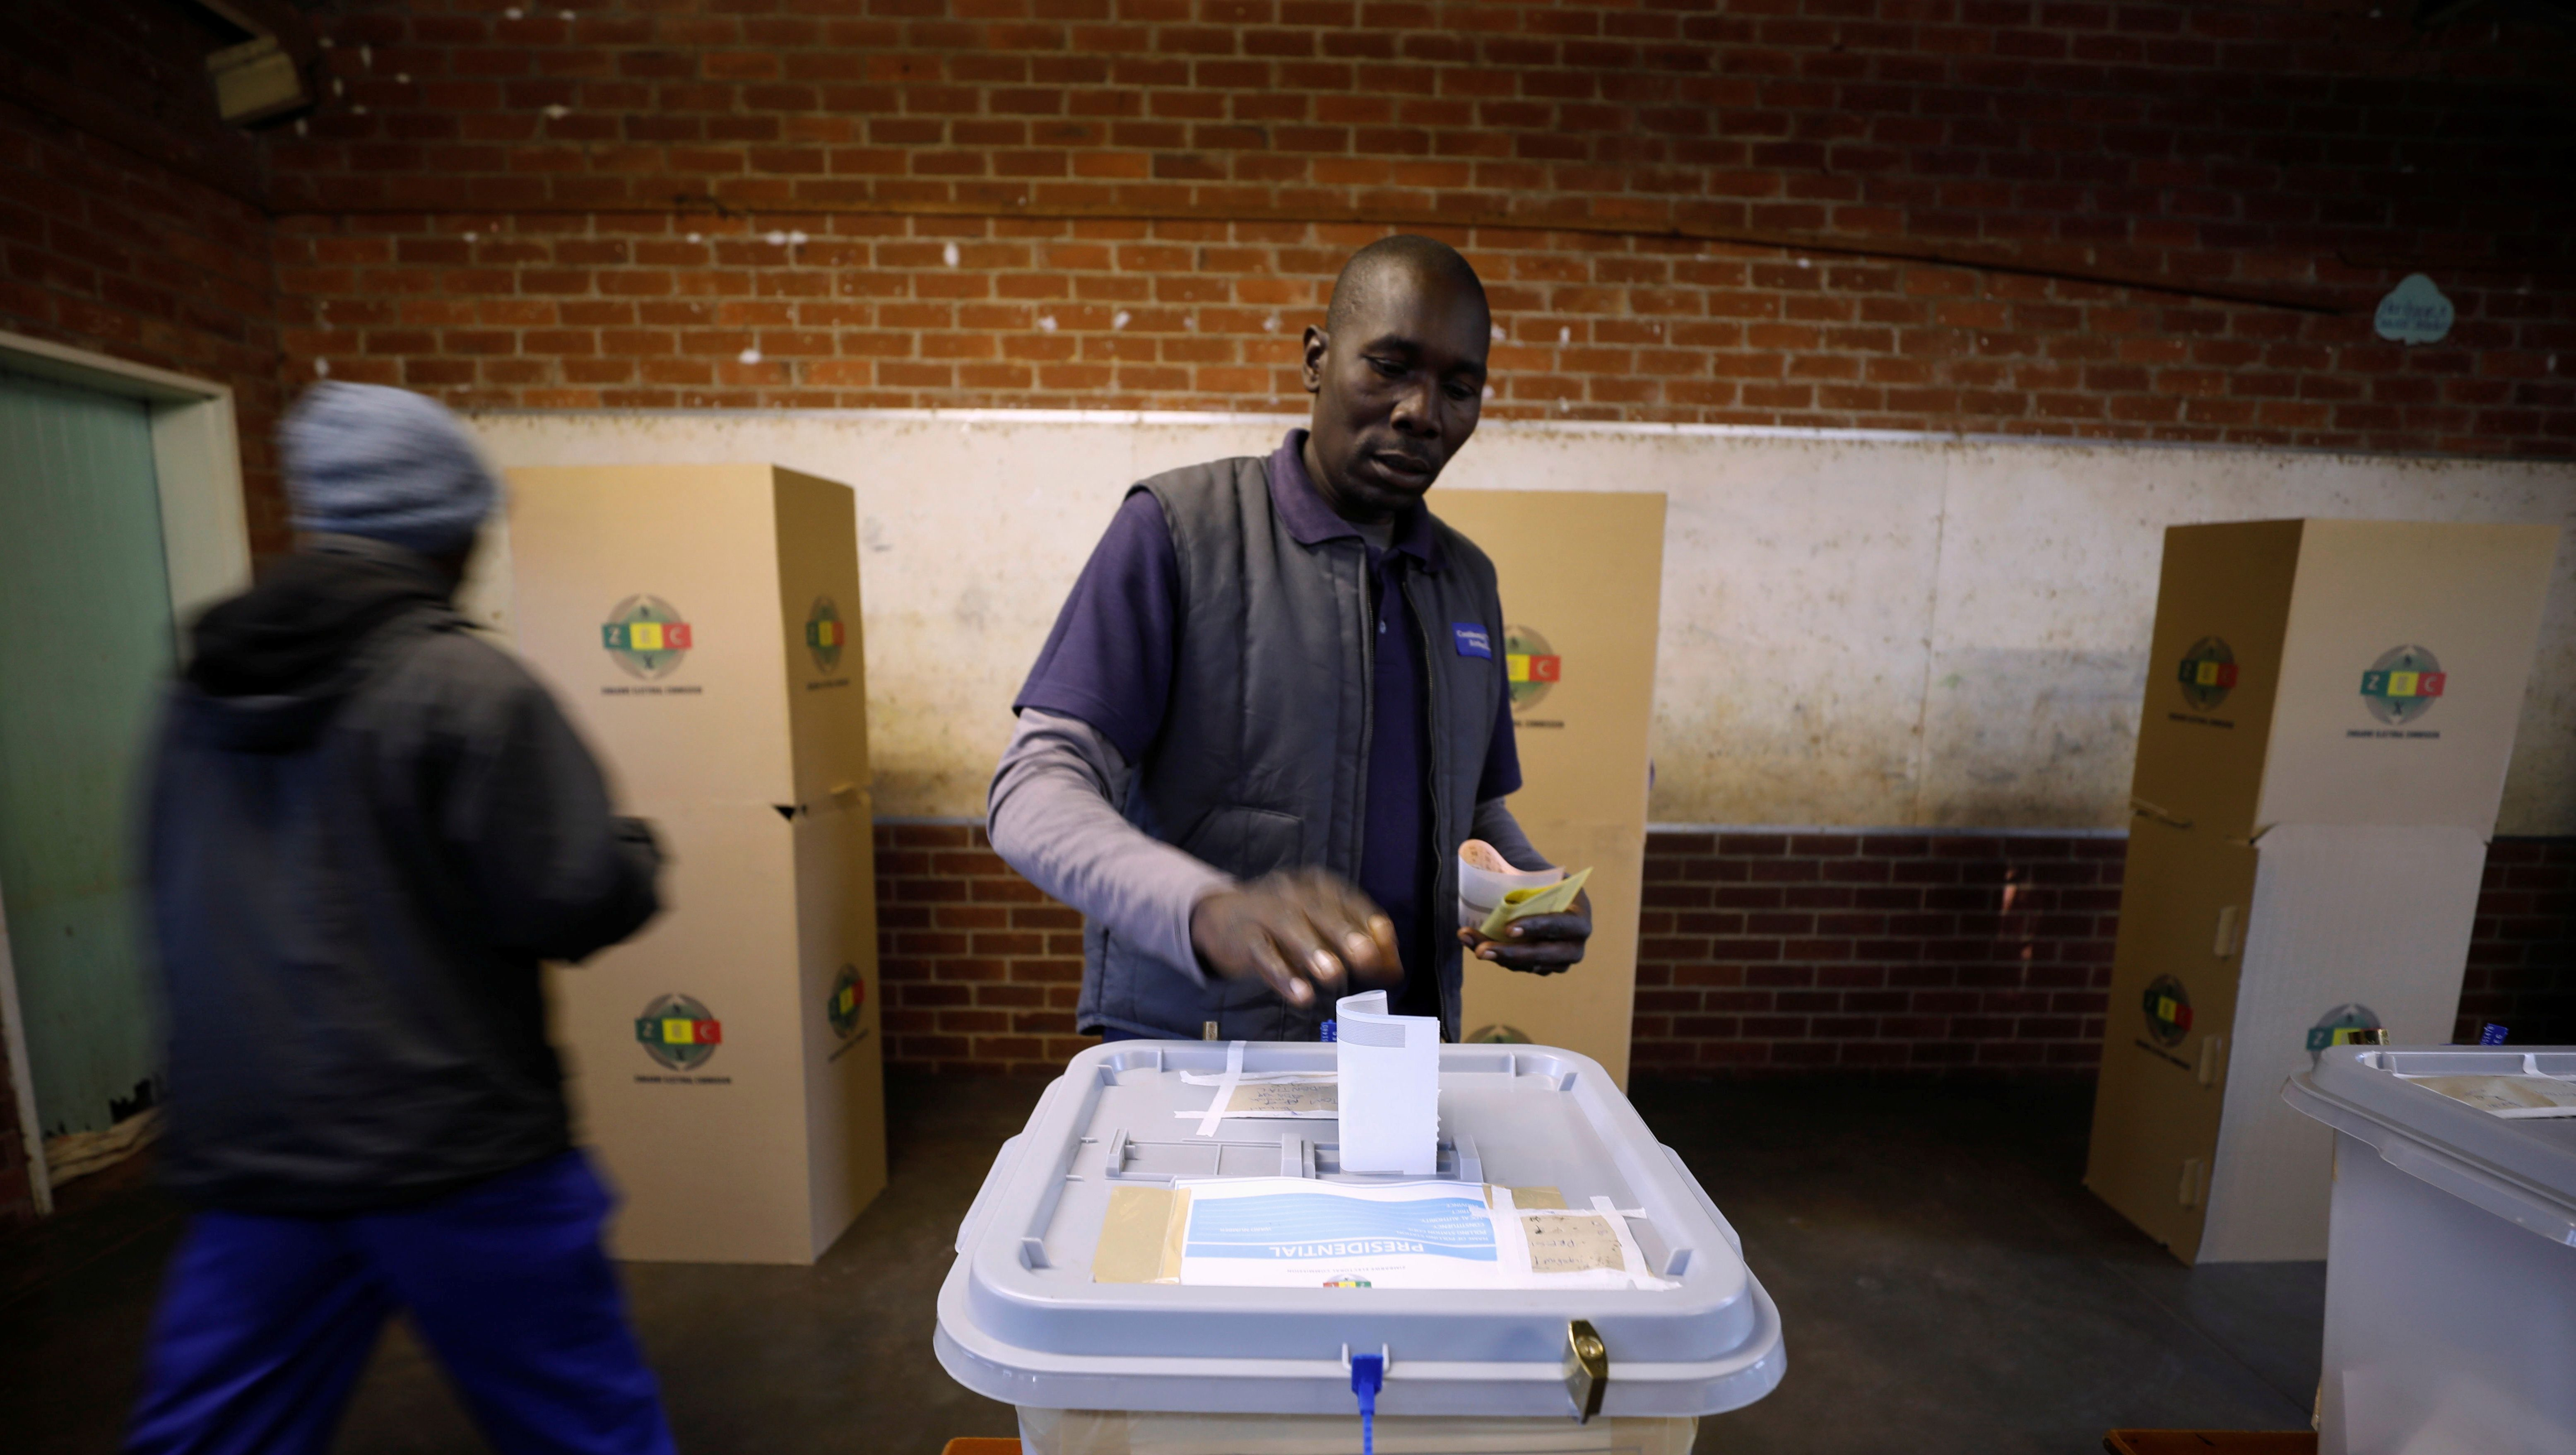 Africa 2019 elections to watch: Nigeria, South Africa